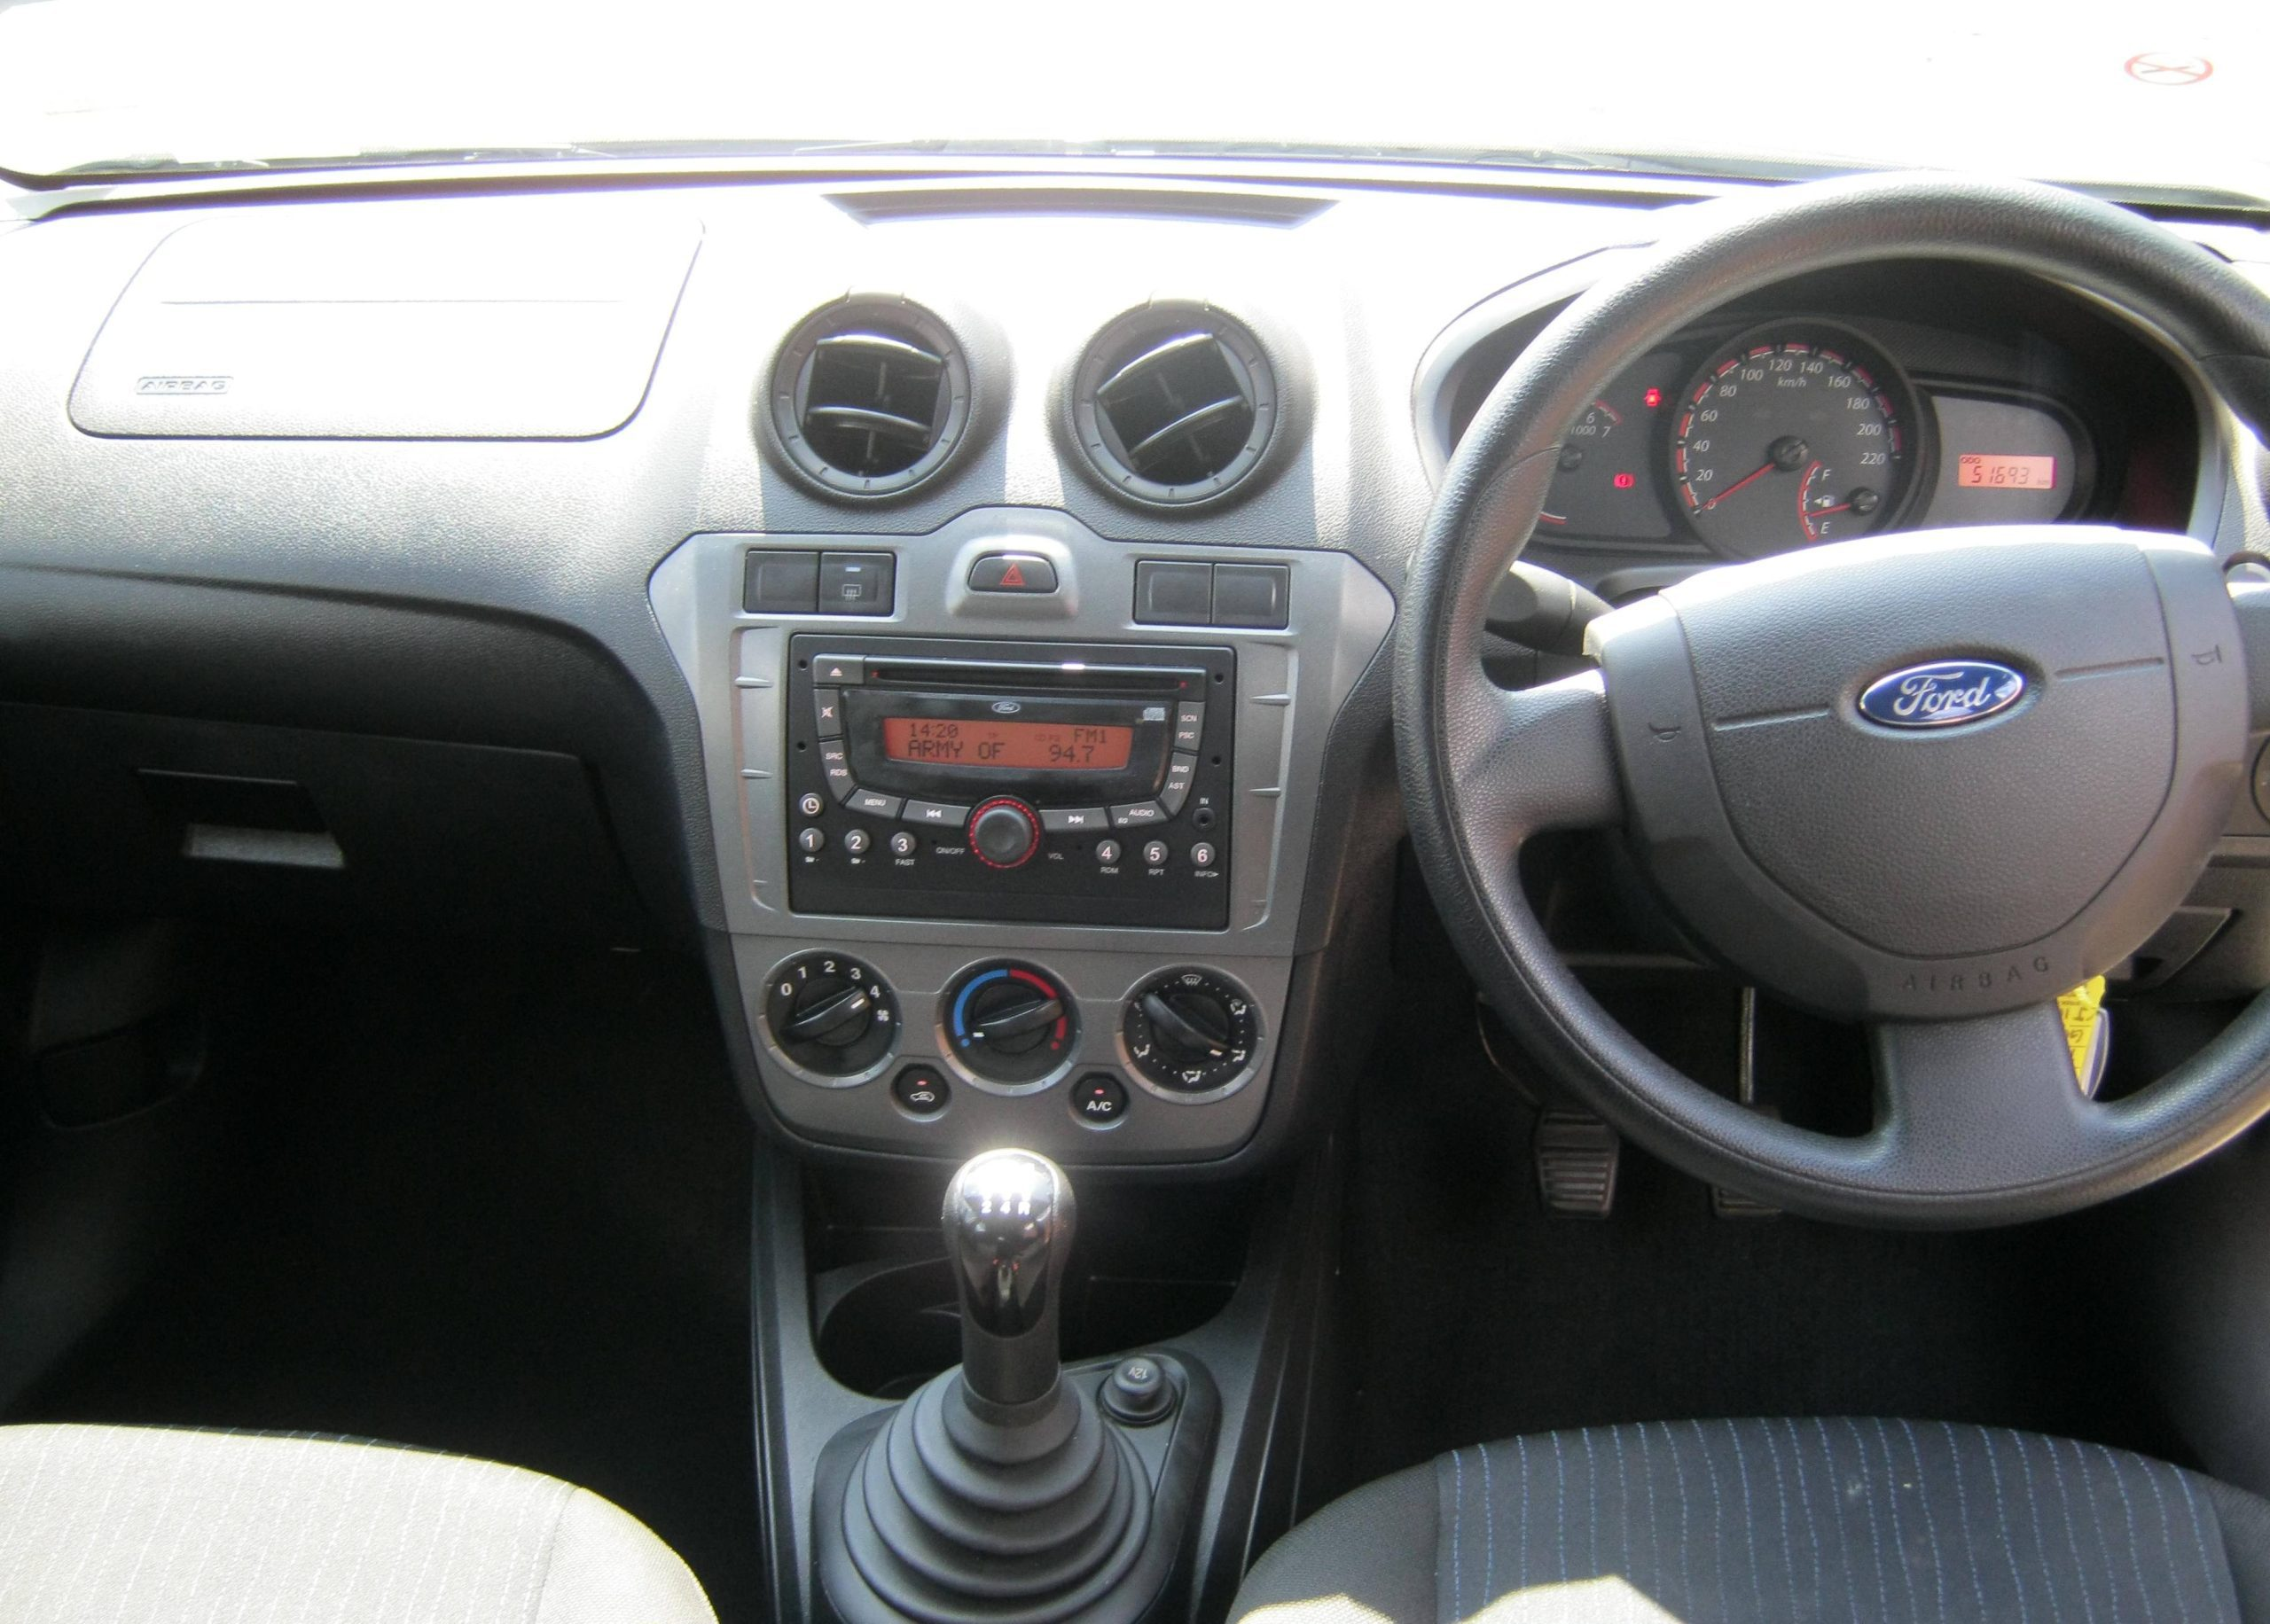 Ford Figo 1.4 Ambiente Dashboard Earn A Car